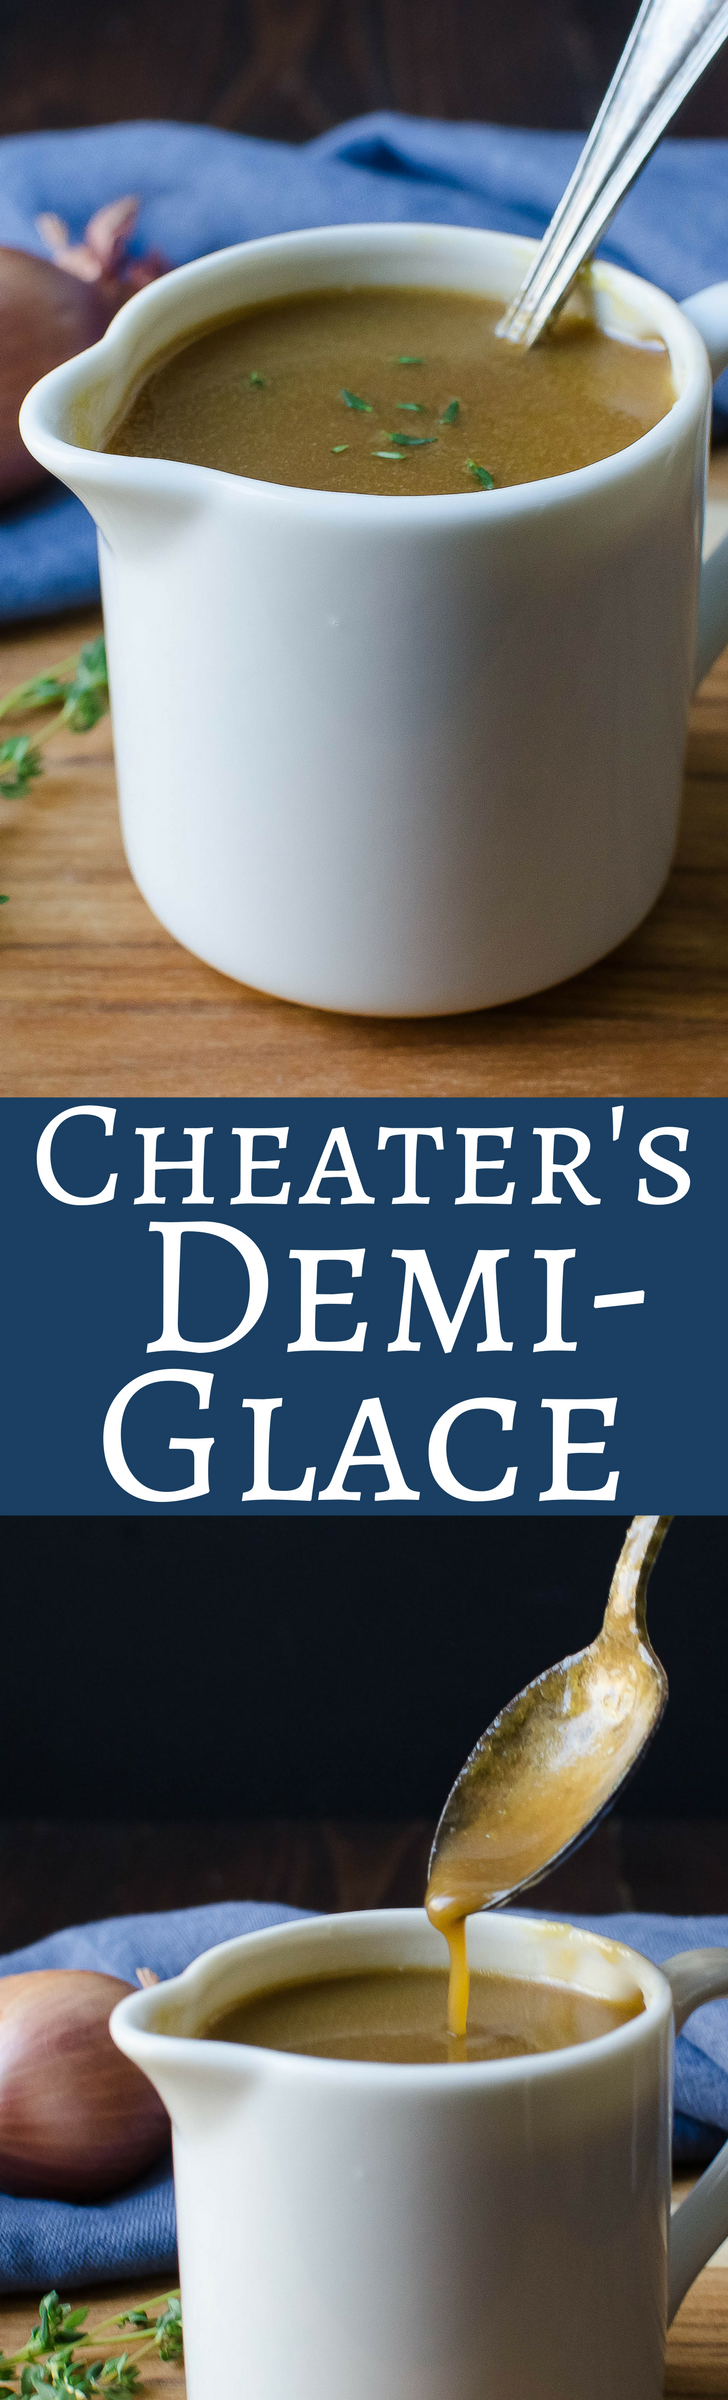 A deep rich demi-glace in less than two hours, instead of two days!  Get the cheater's secret to this rich, umami laden reduction!